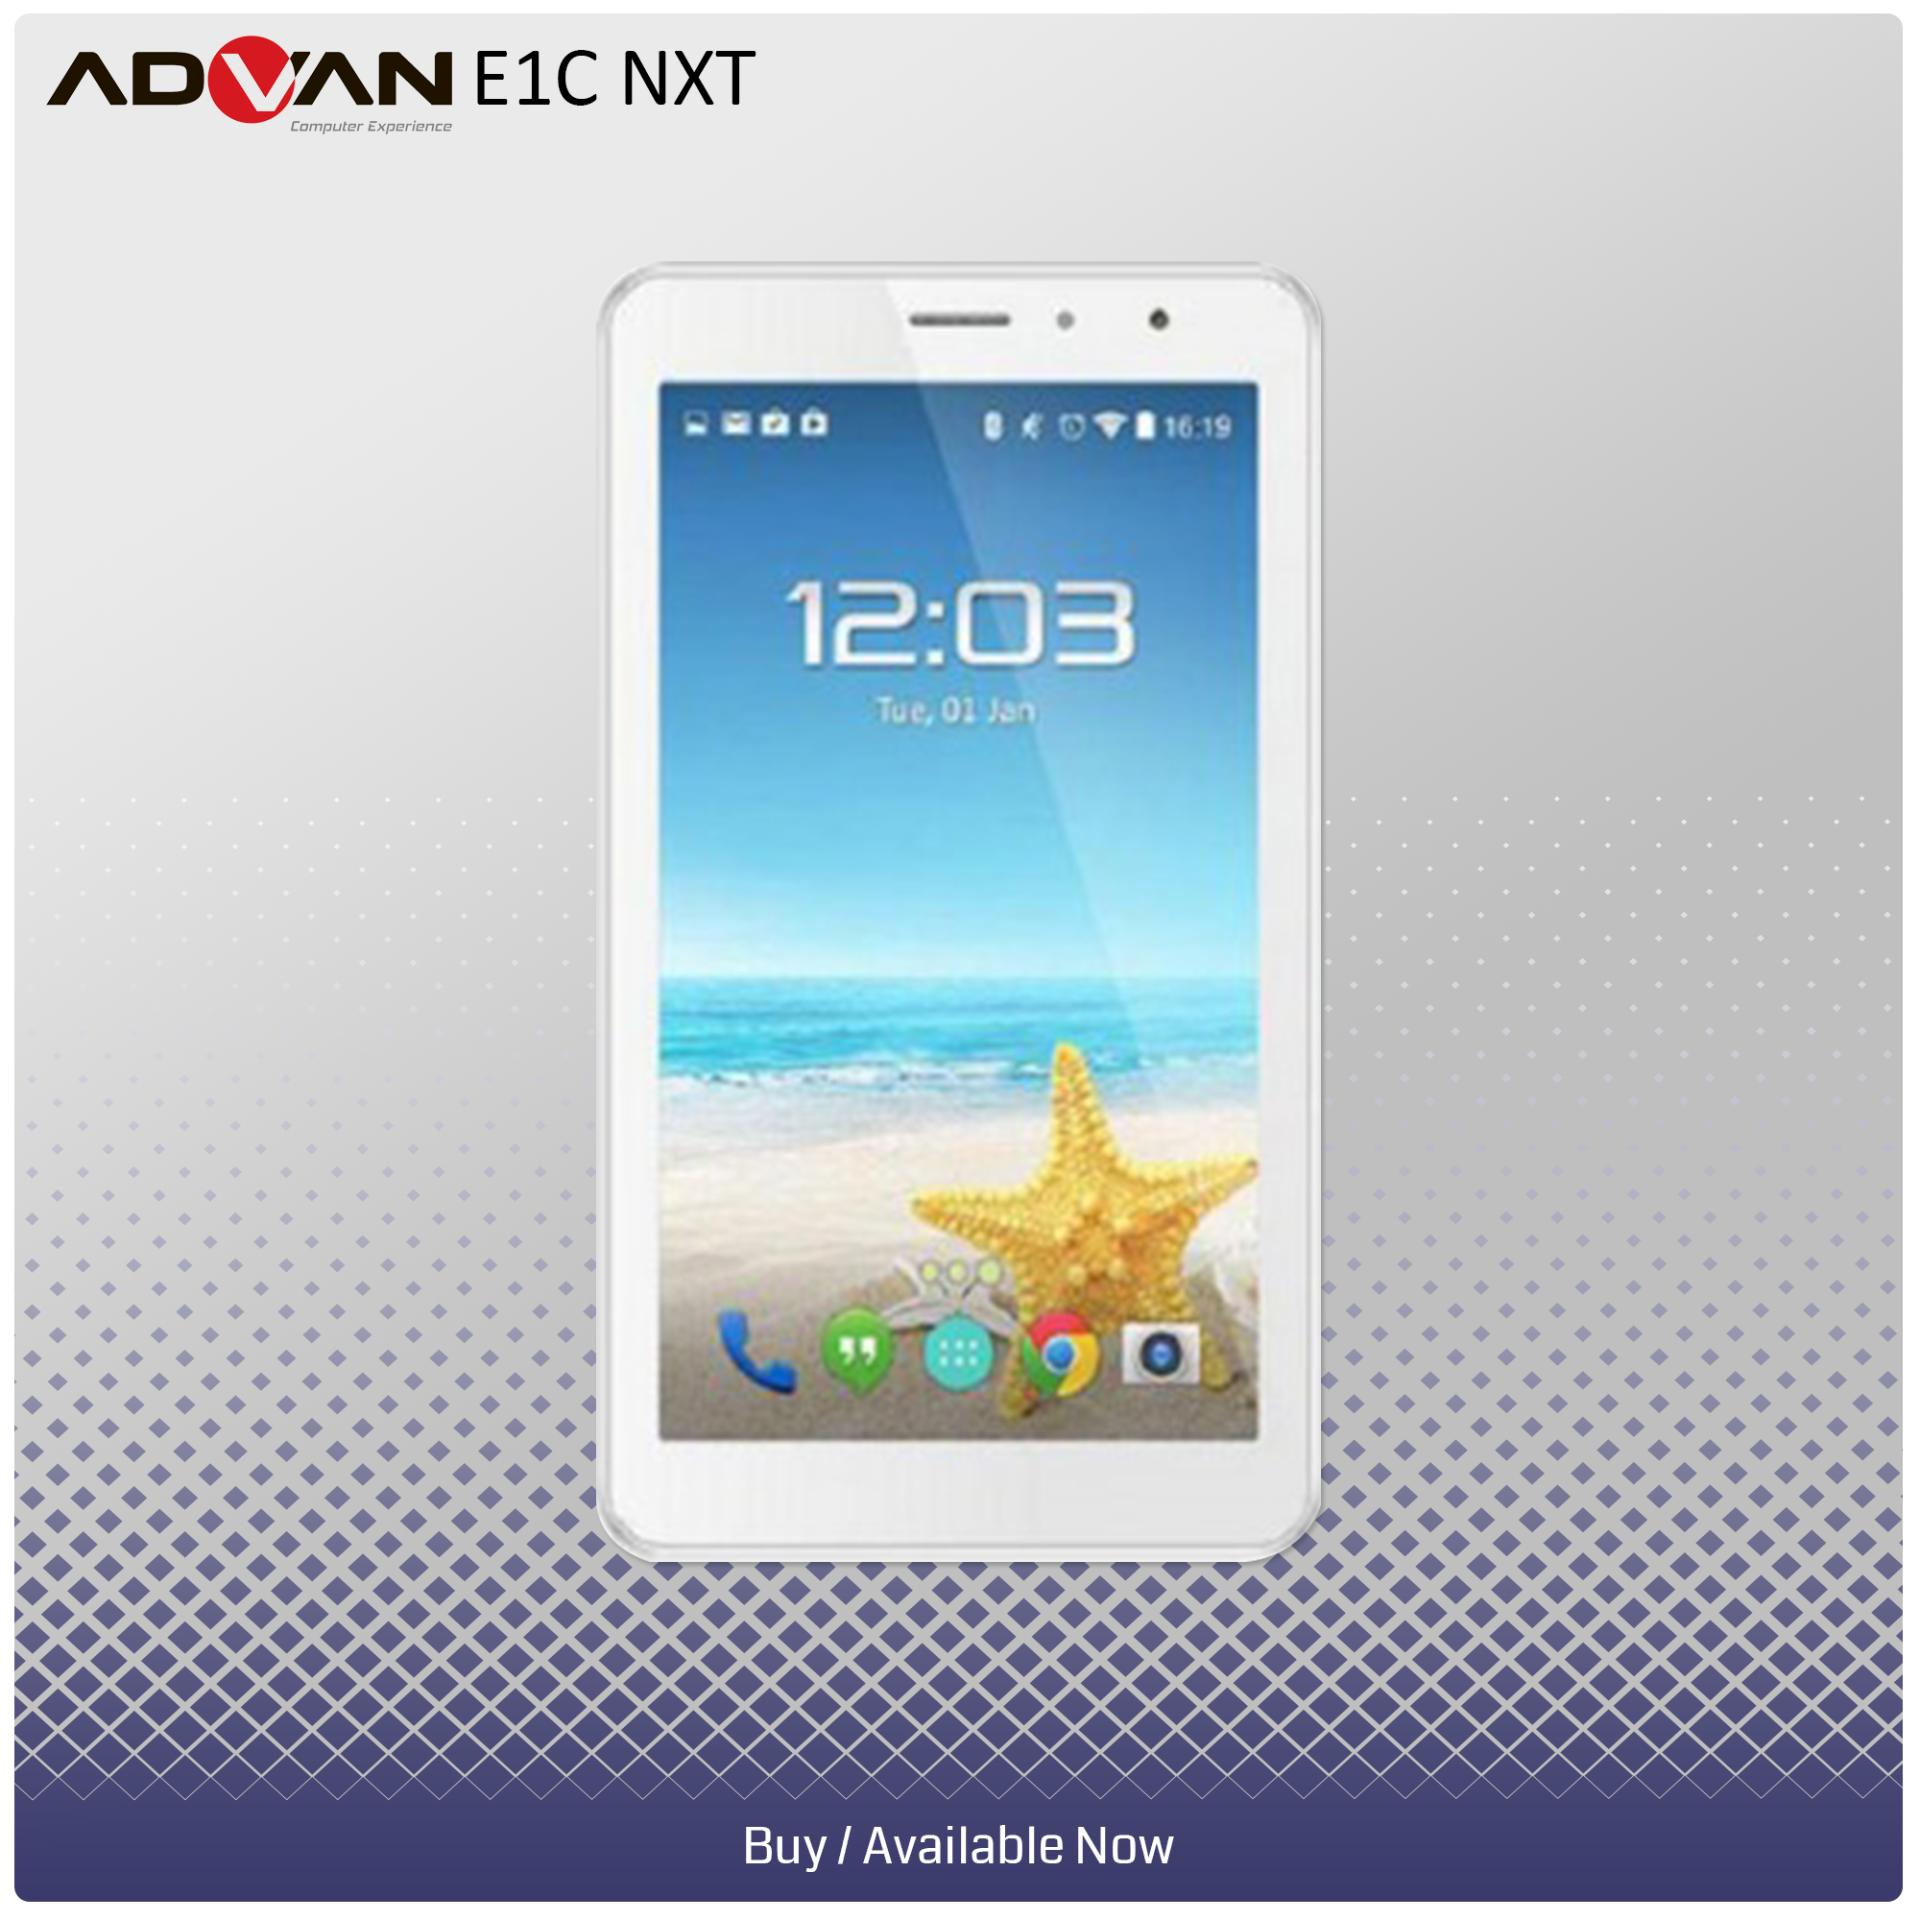 Buy Sell Cheapest Advan Tablet Best Quality Product Deals I7 Play Fast Quadcore 4g Lte Ram 1gb Vandroid E1c Nxt Dual Sim Android Nougat 70